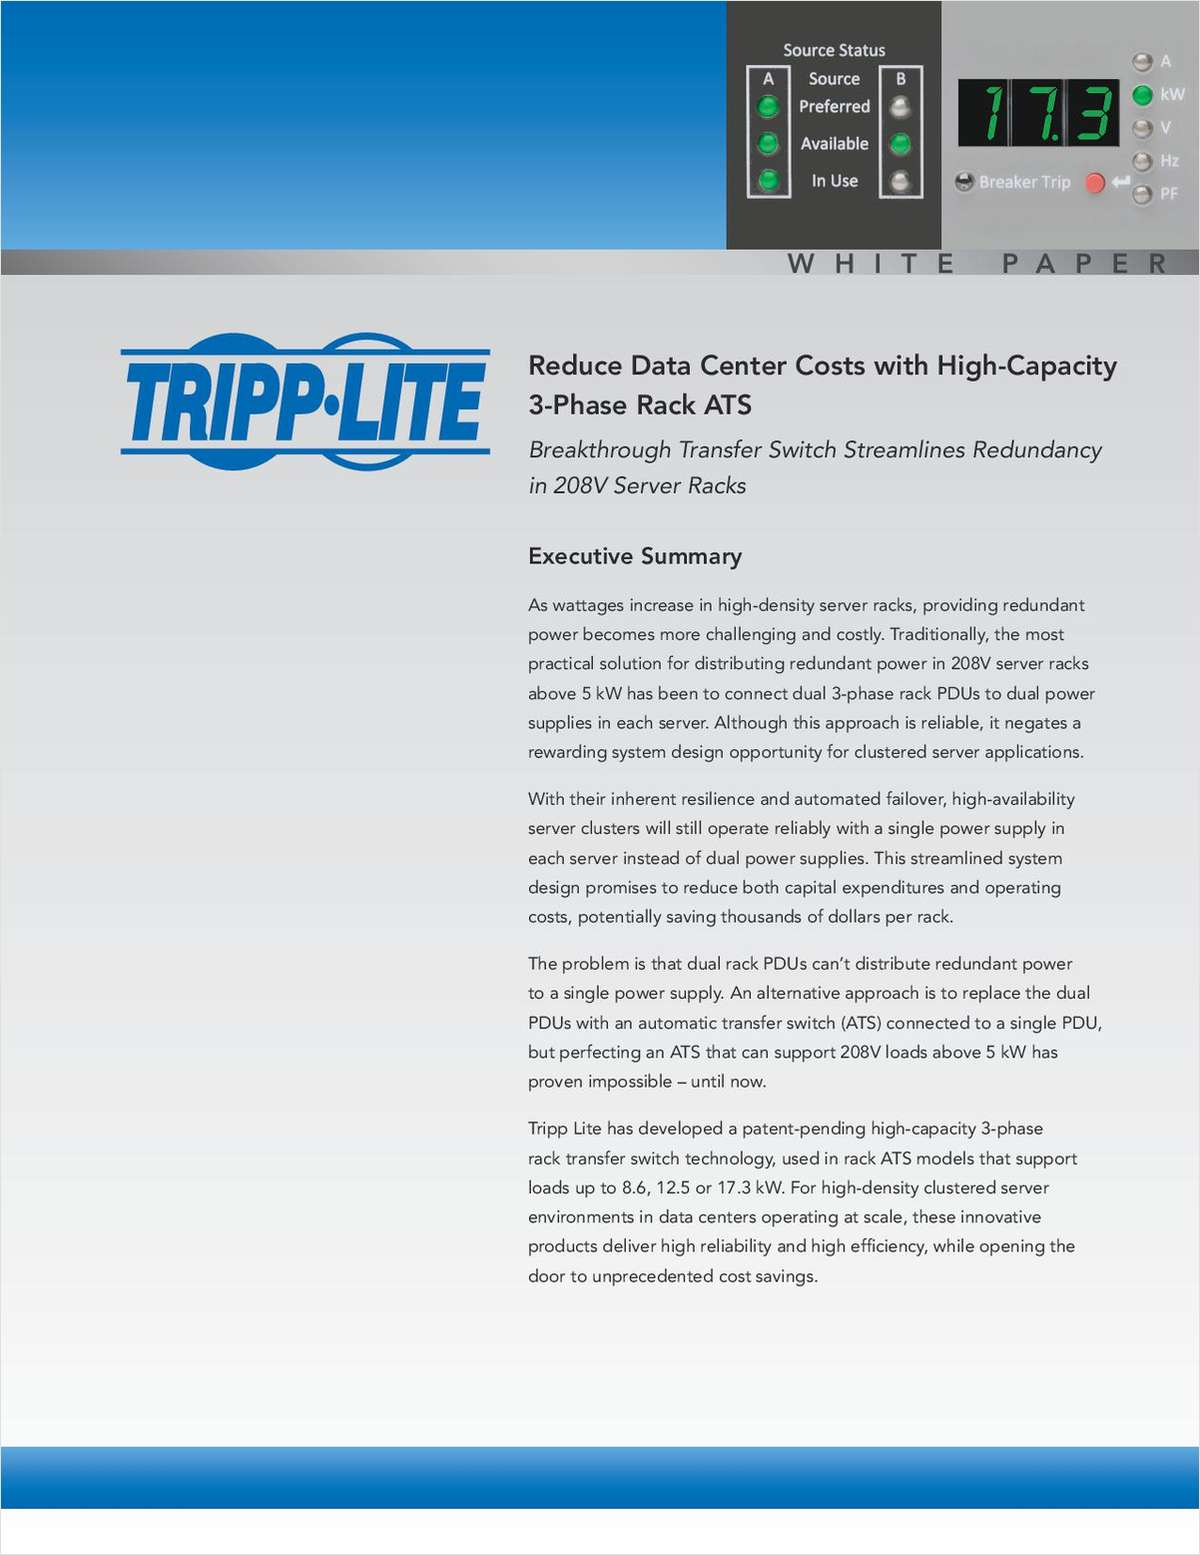 Reduce Data Center Costs with High-Capacity 3-Phase Rack ATS